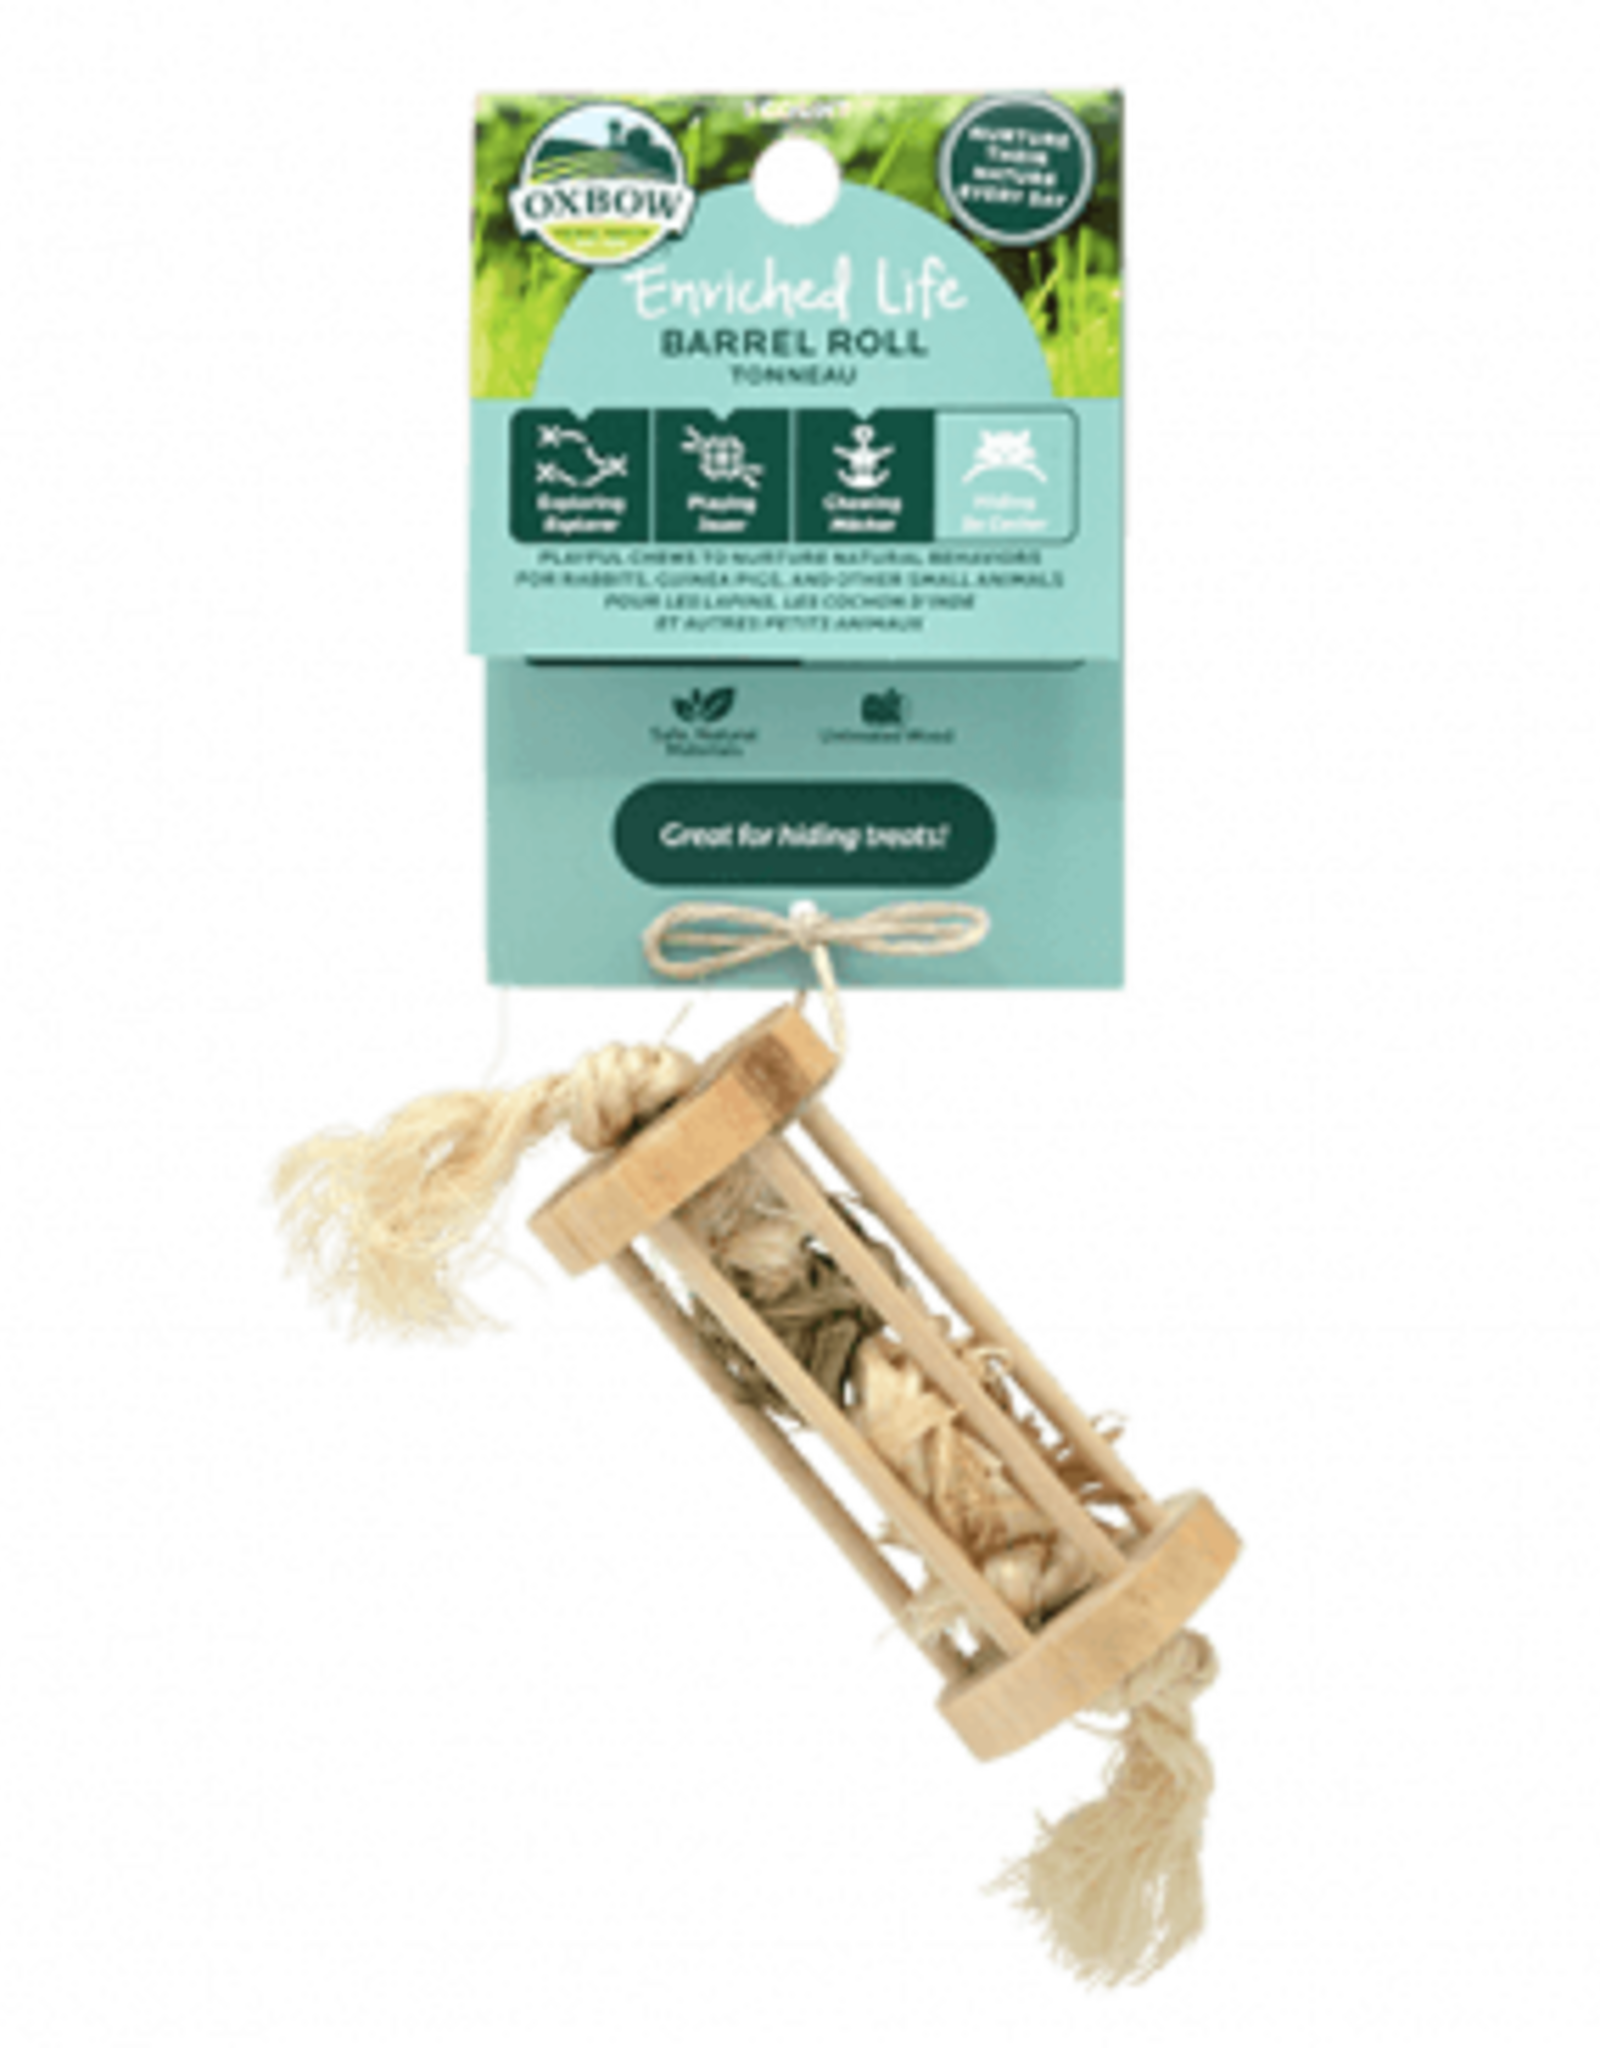 OXBOW PET PRODUCTS OXBOW BARREL ROLL